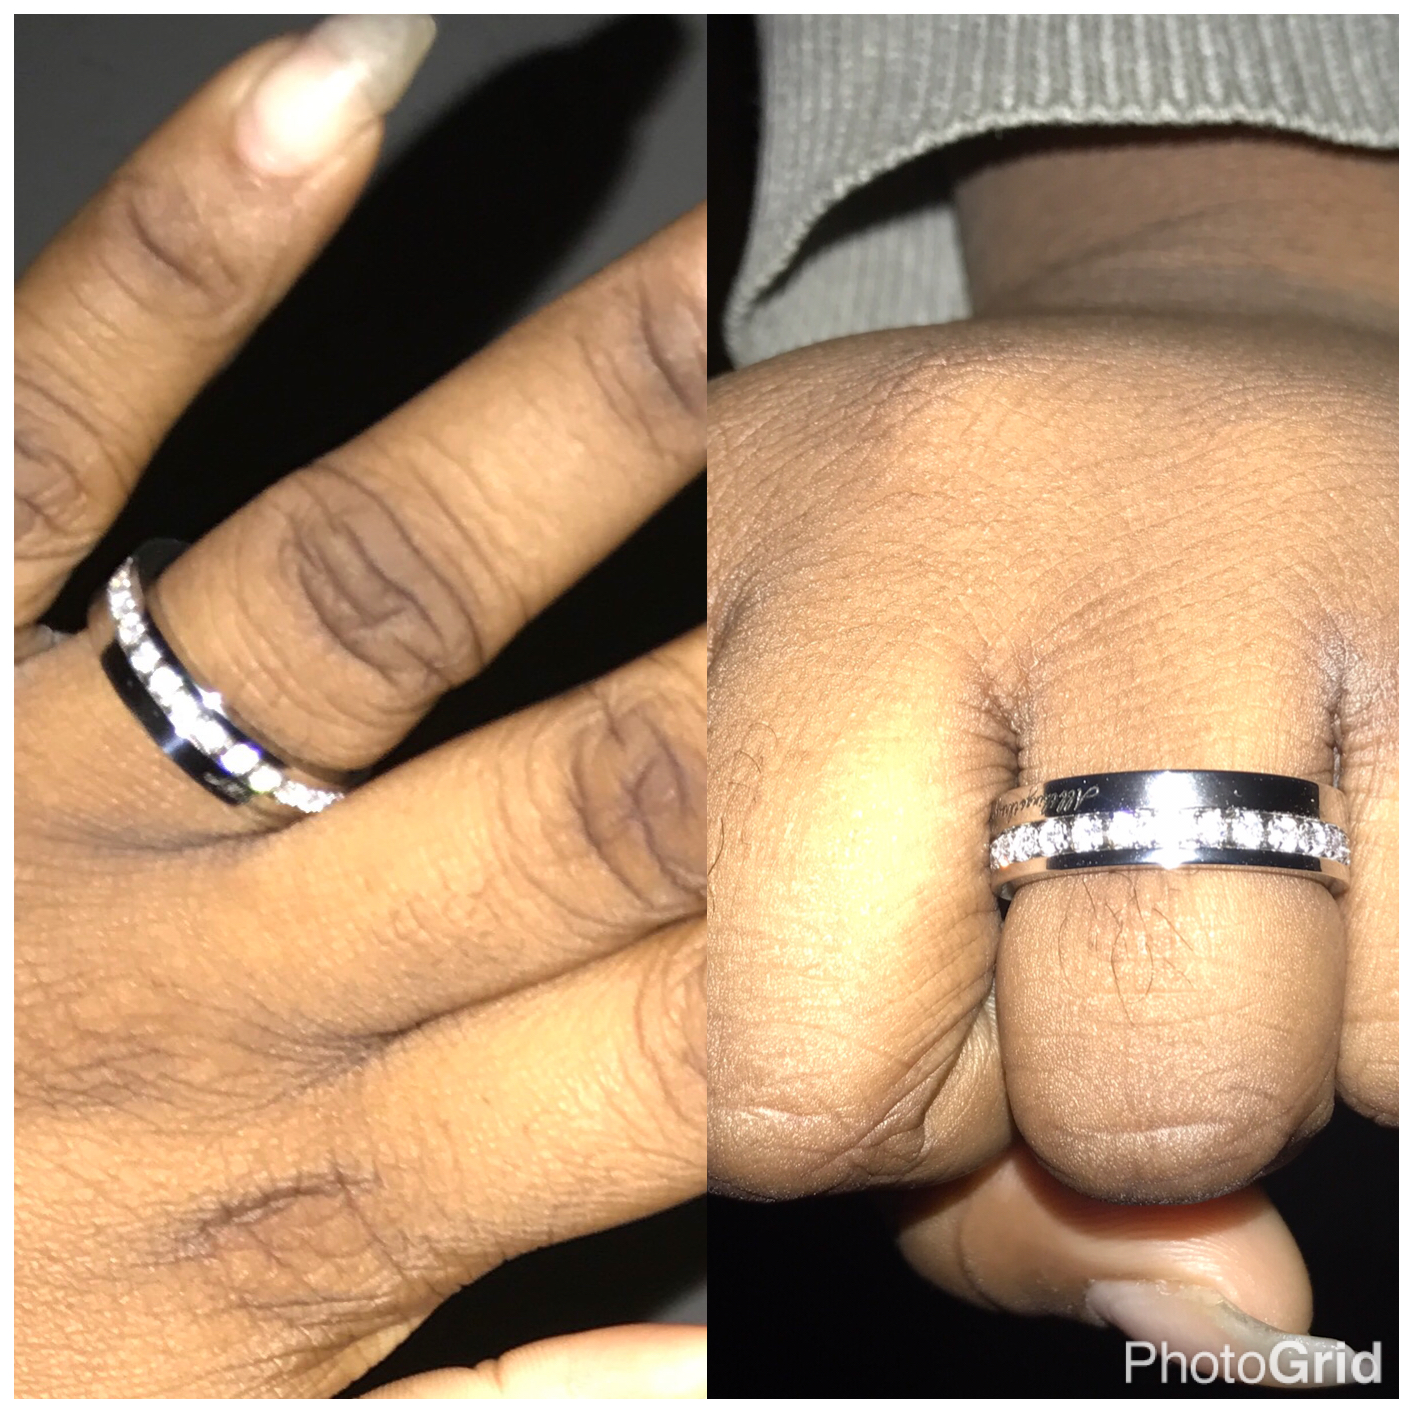 My ring! It says, 'All things through Christ my strength' on the outside and in the inside it says, 'You can do this'